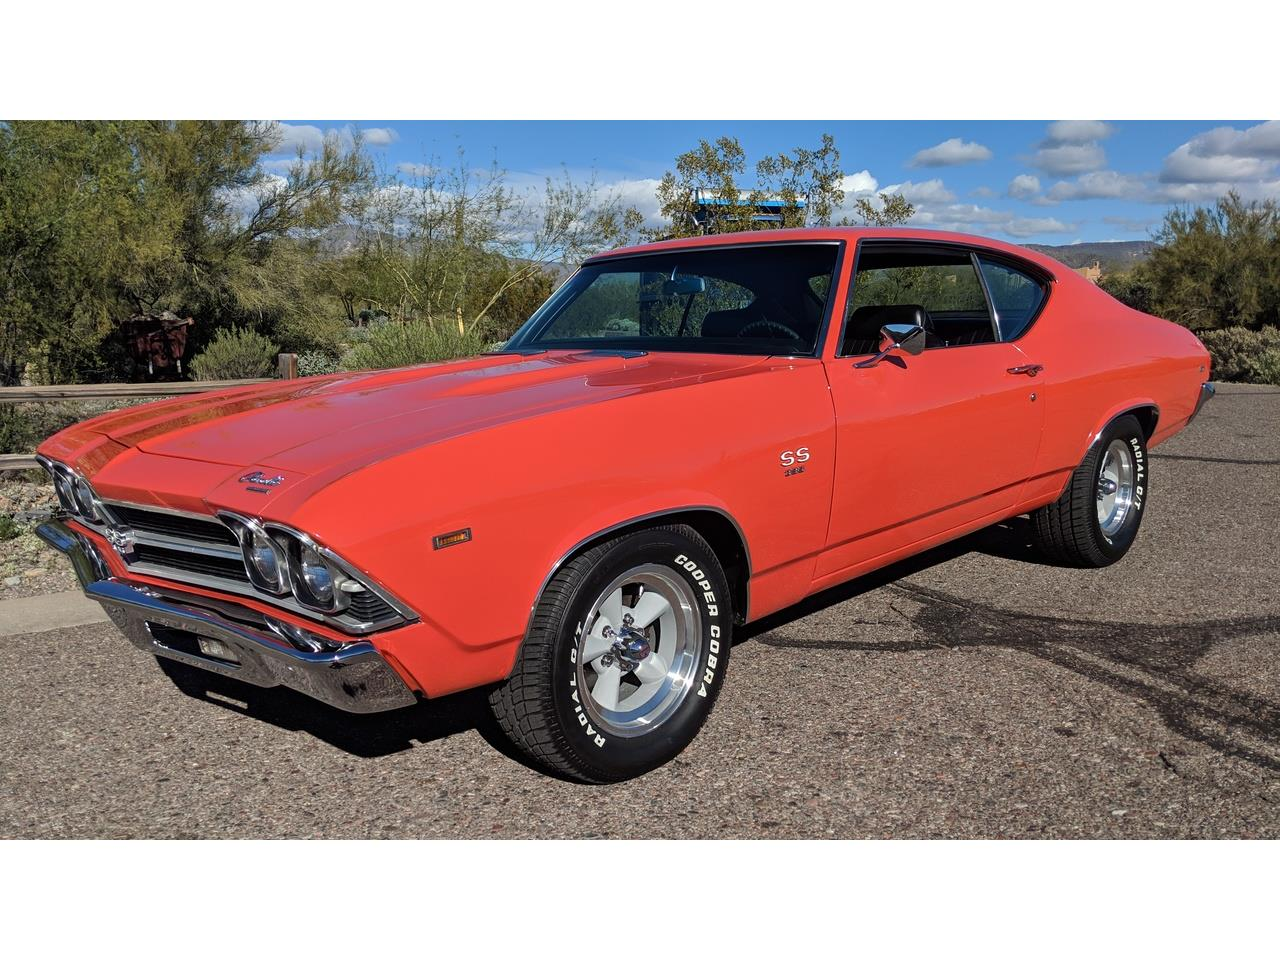 Large Picture of '69 Chevrolet Chevelle SS located in CAVE CREEK Arizona - $54,000.00 - PEBN